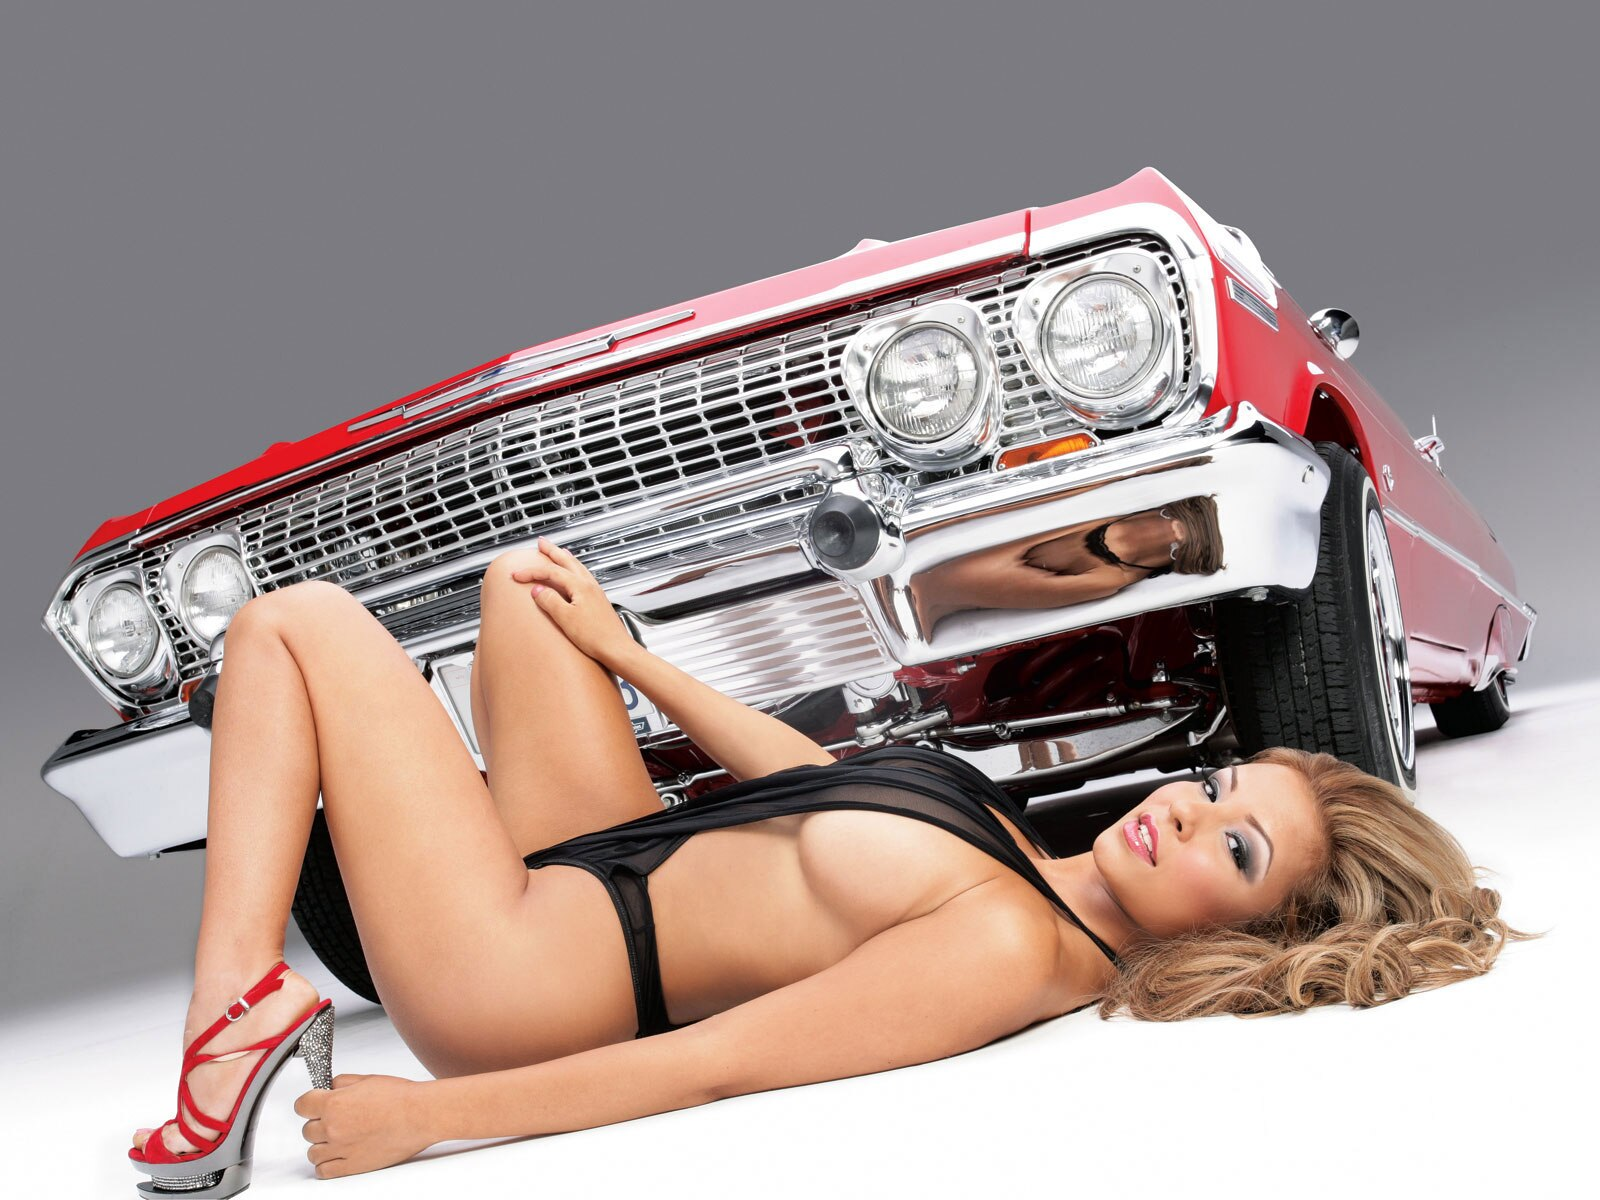 1107-lrms-01-o-faviola-amor-lowrider-girls-model-2